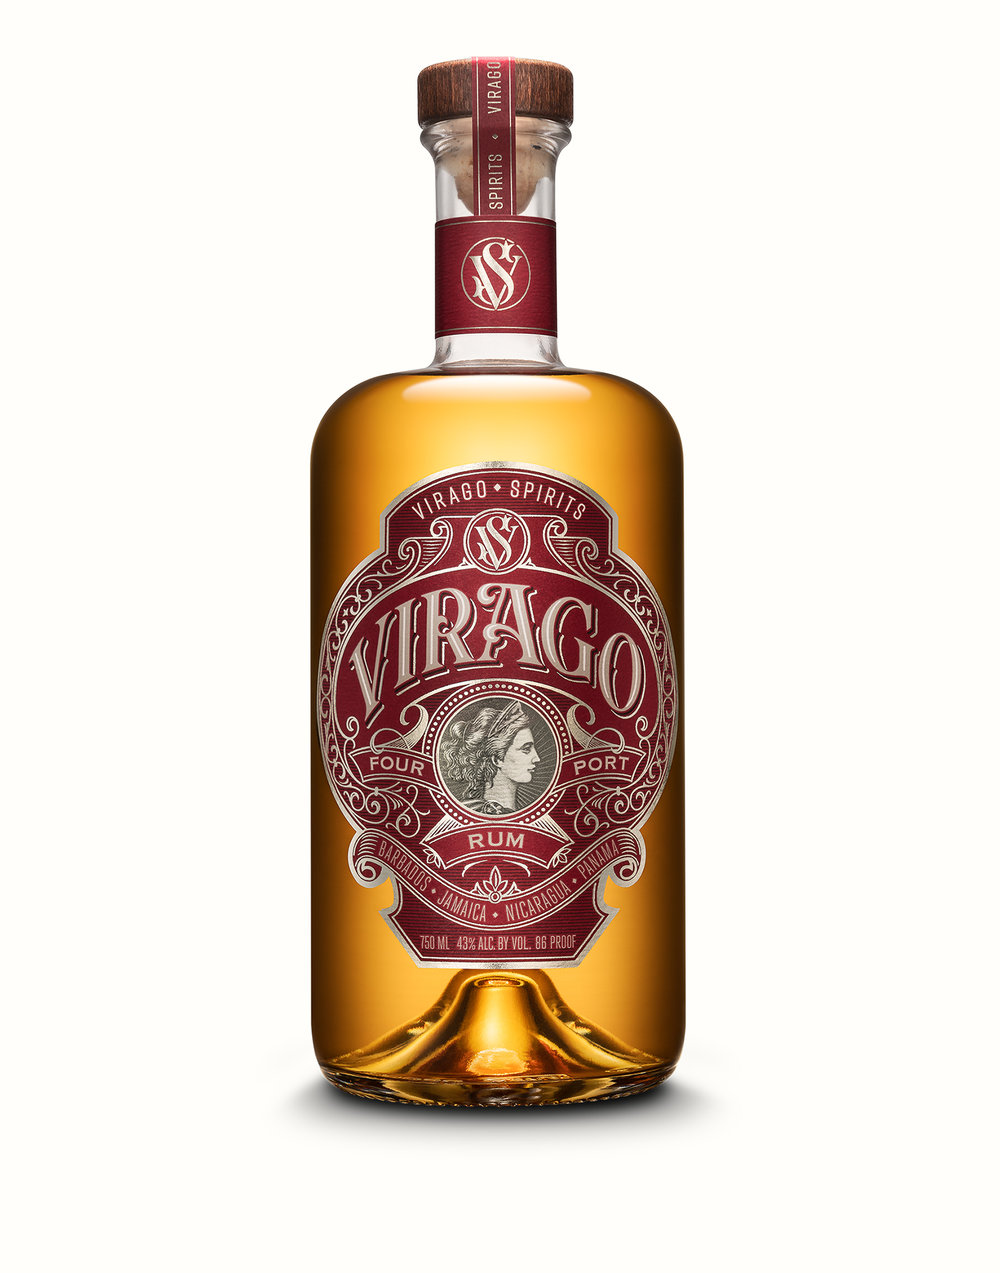 Virago-Spirits-Four-Port-Rum-Bottle.jpg